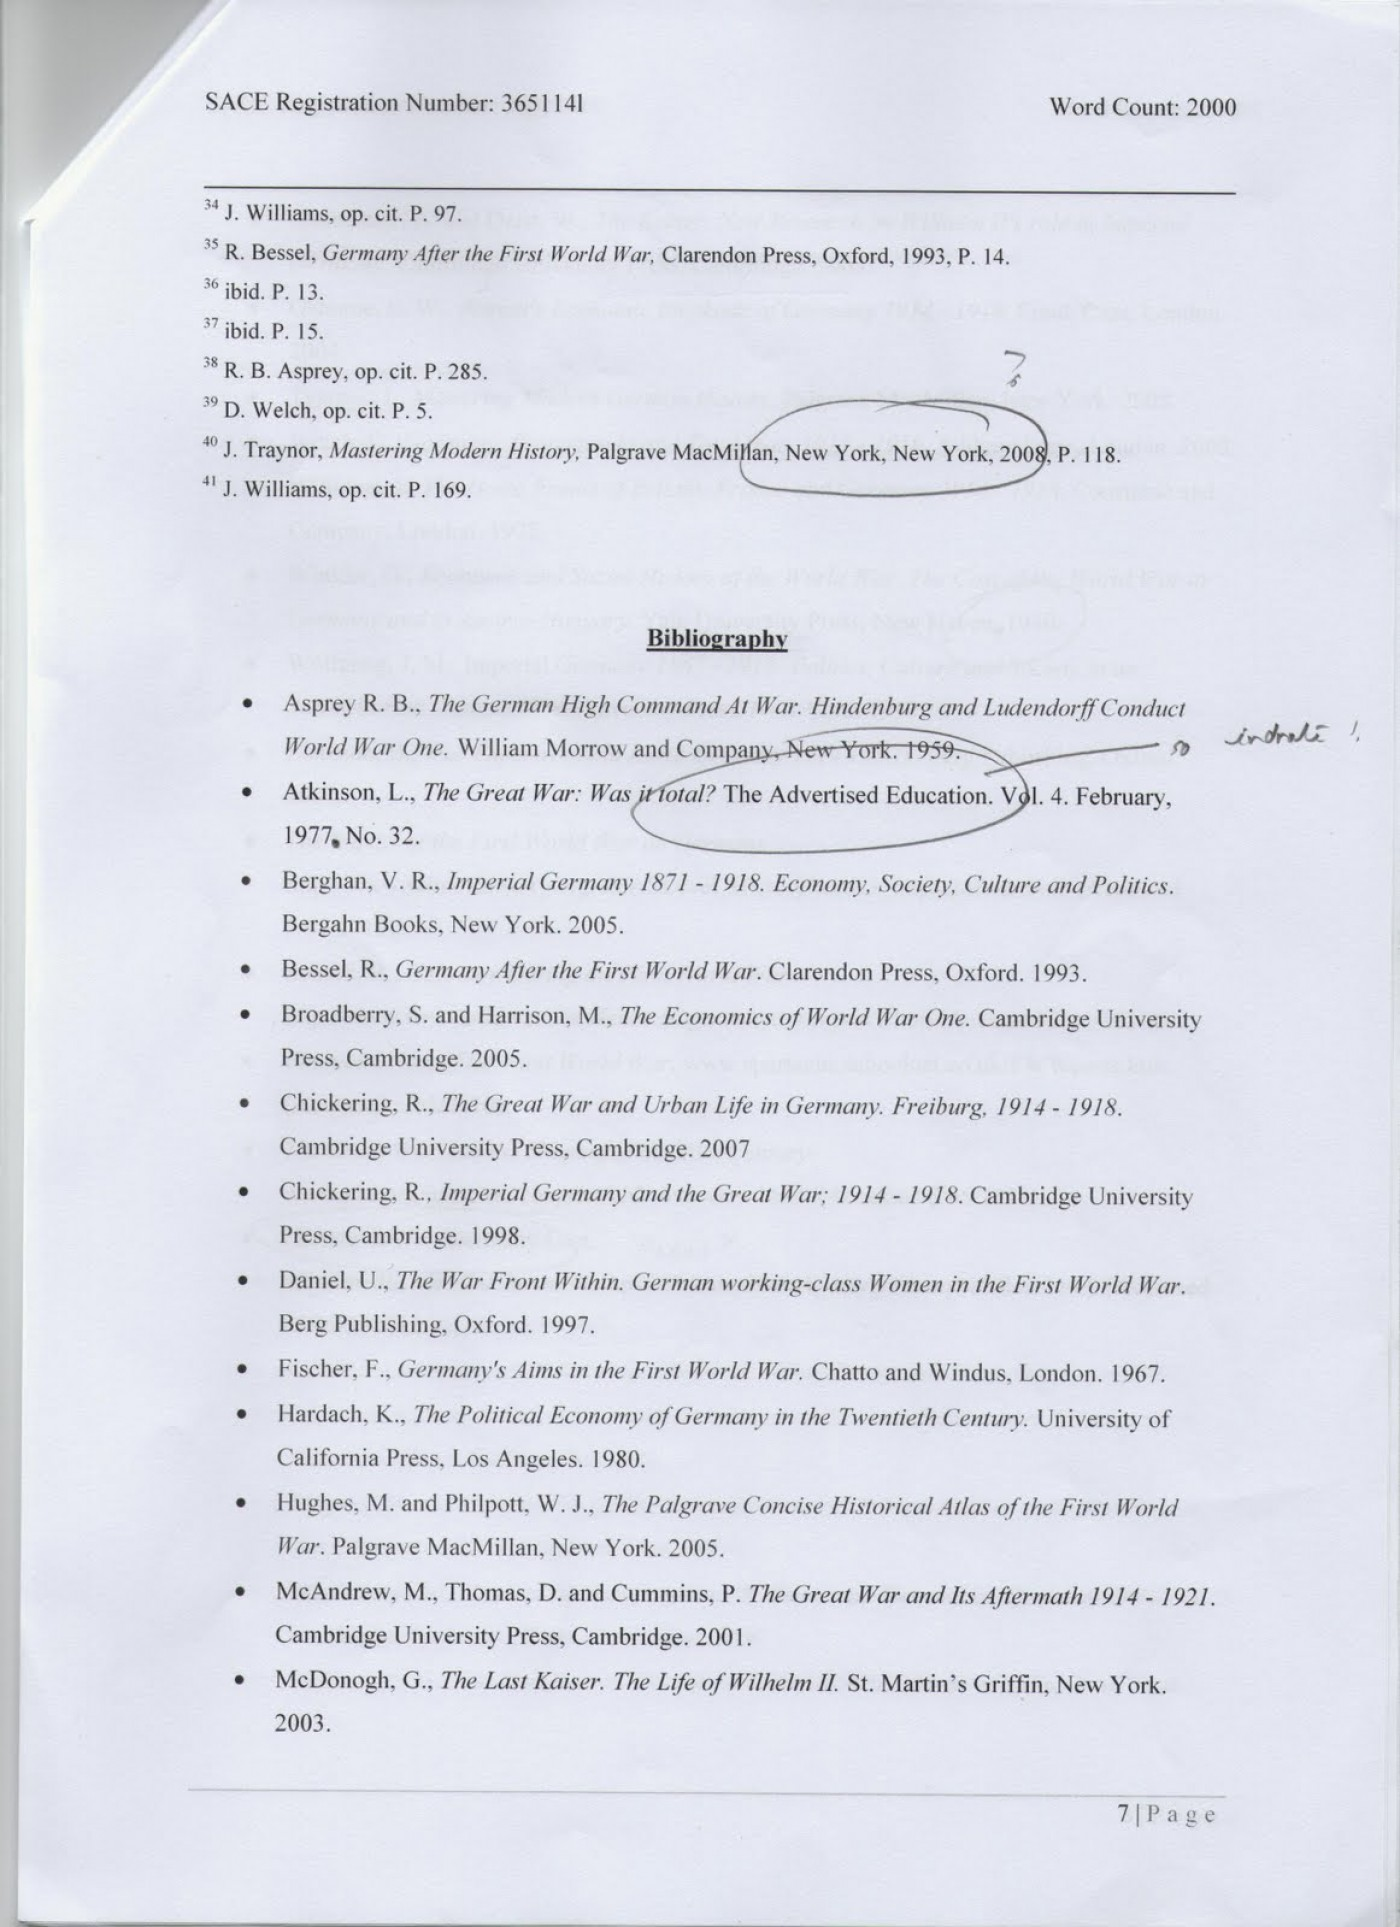 005 Endnotes2bbibliography1 Why Uchicago Essay Fearsome College Confidential Reddit Length 1400